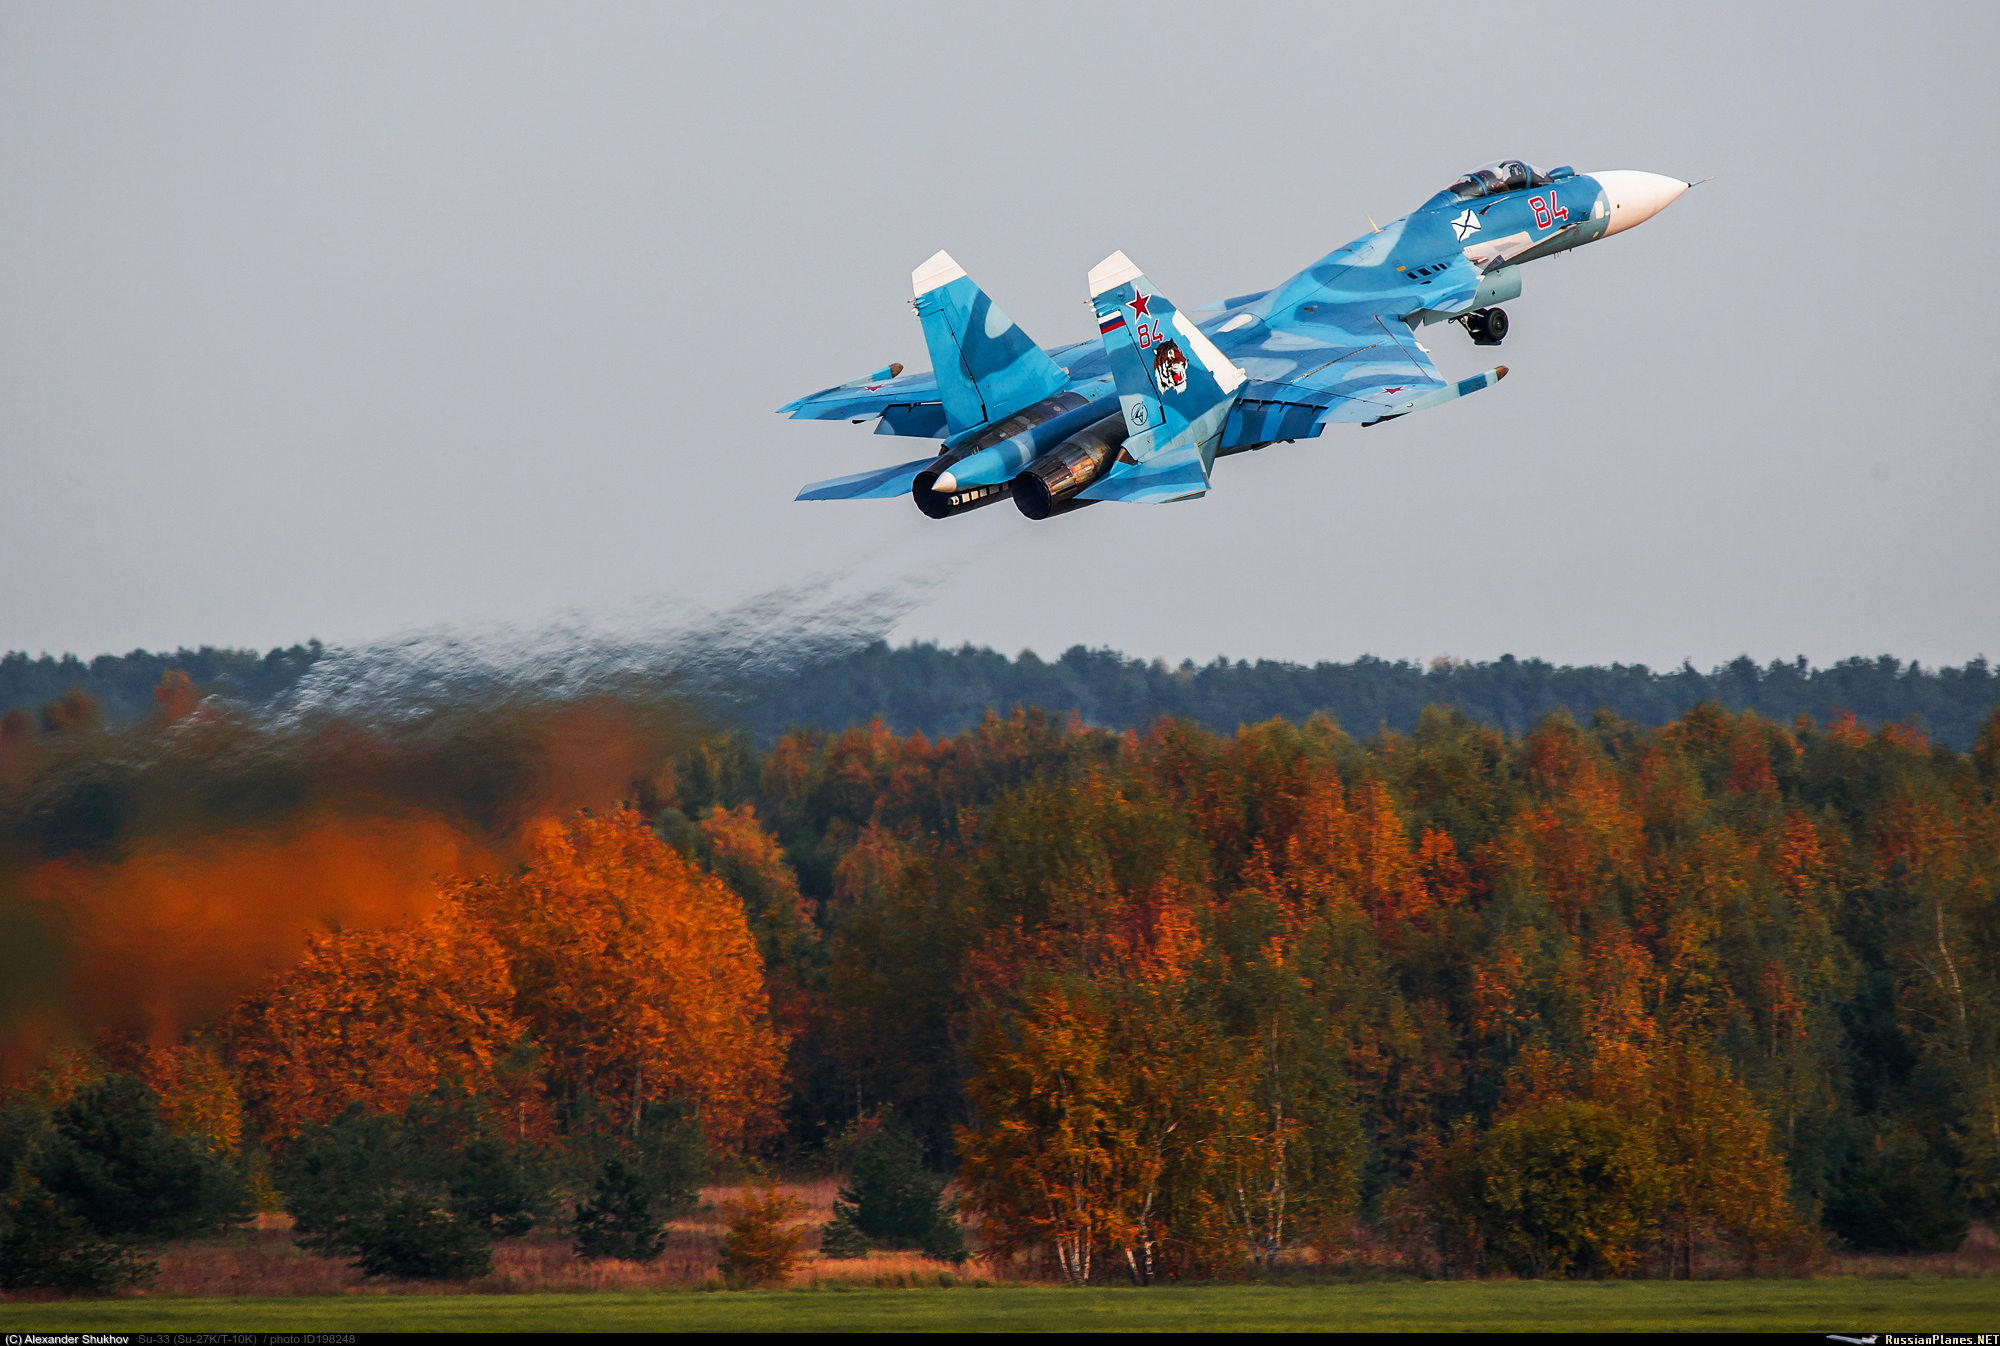 http://russianplanes.net/images/to199000/198248.jpg